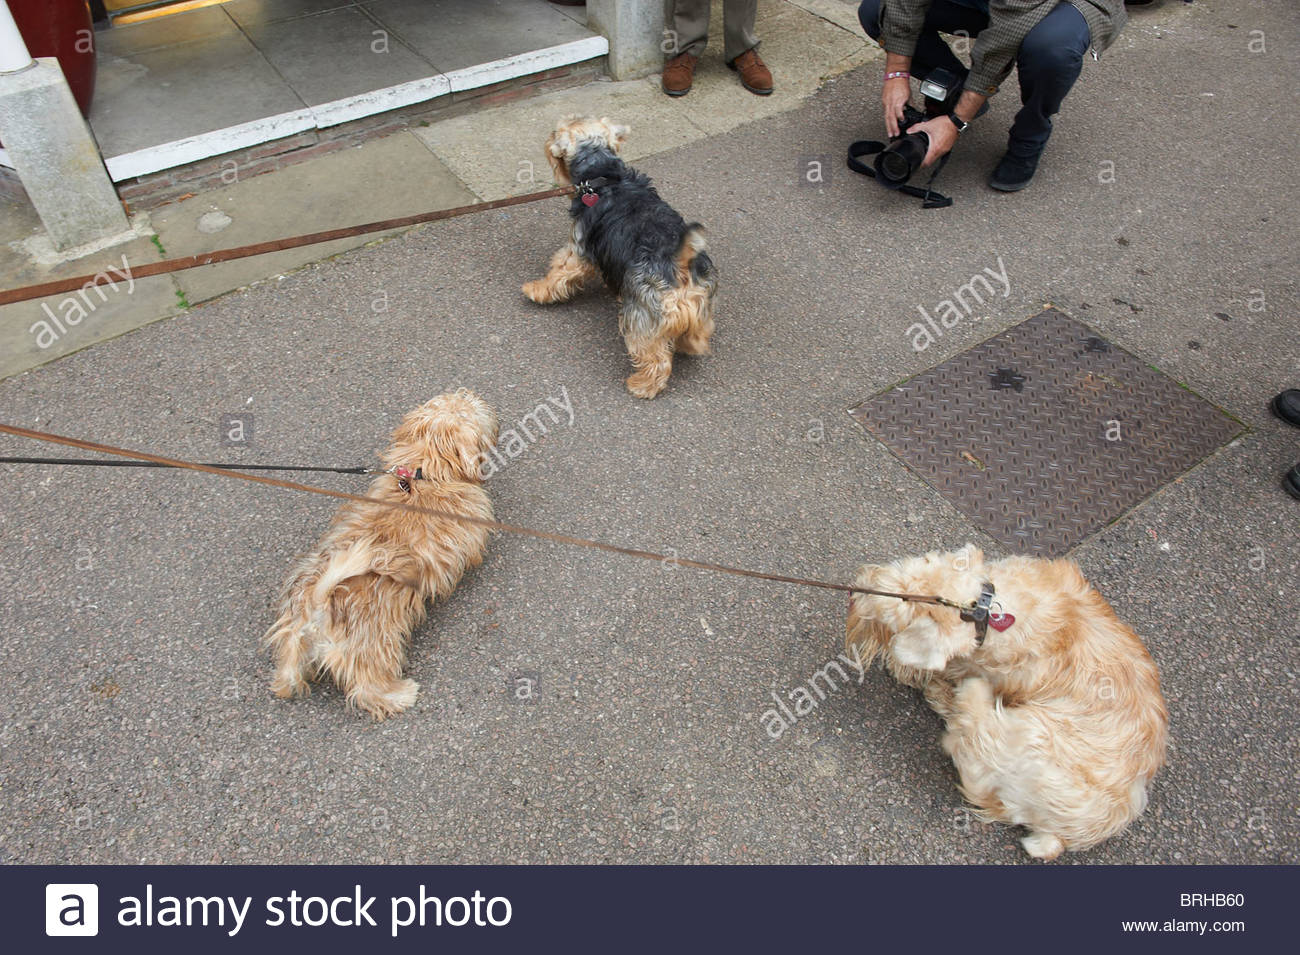 Dogs on leads being photographed - Stock Image